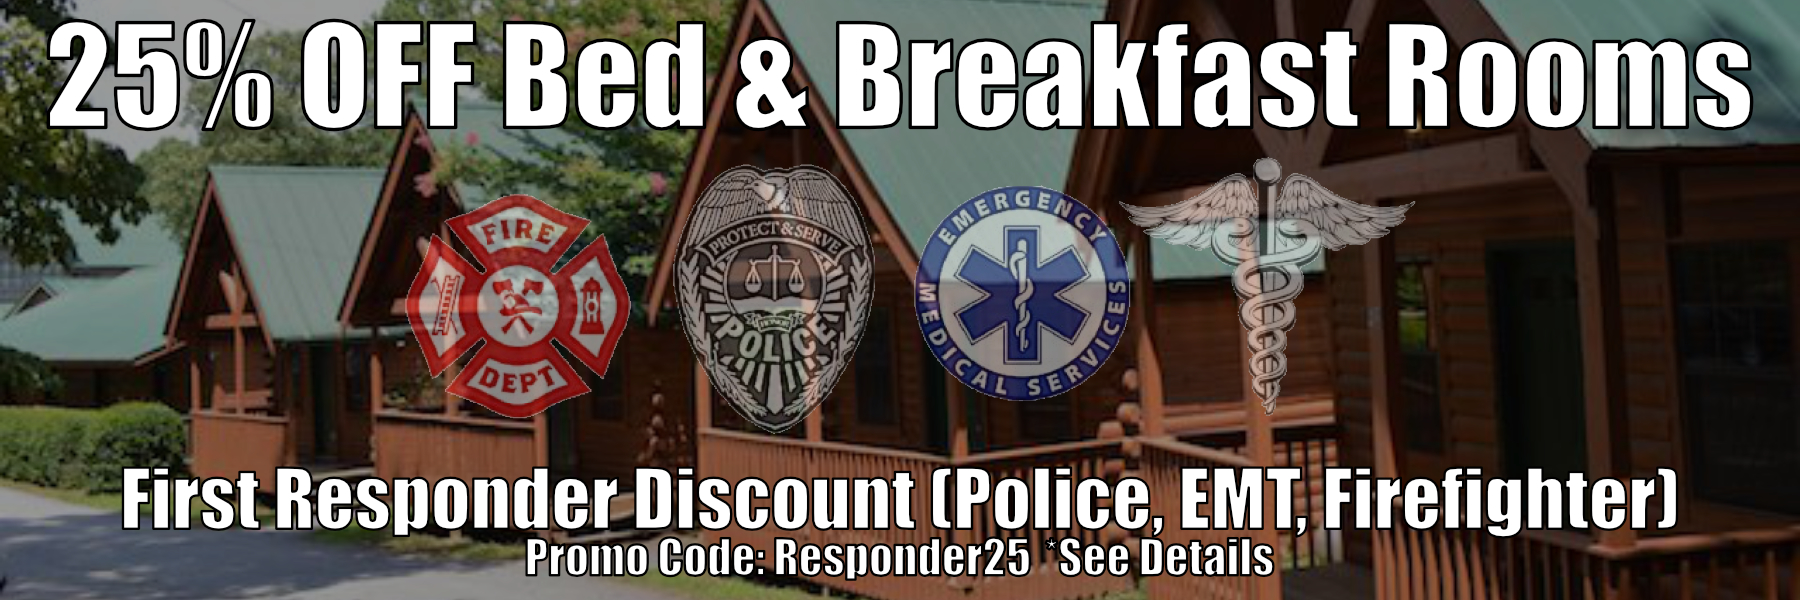 25% Off Lodging First Responders